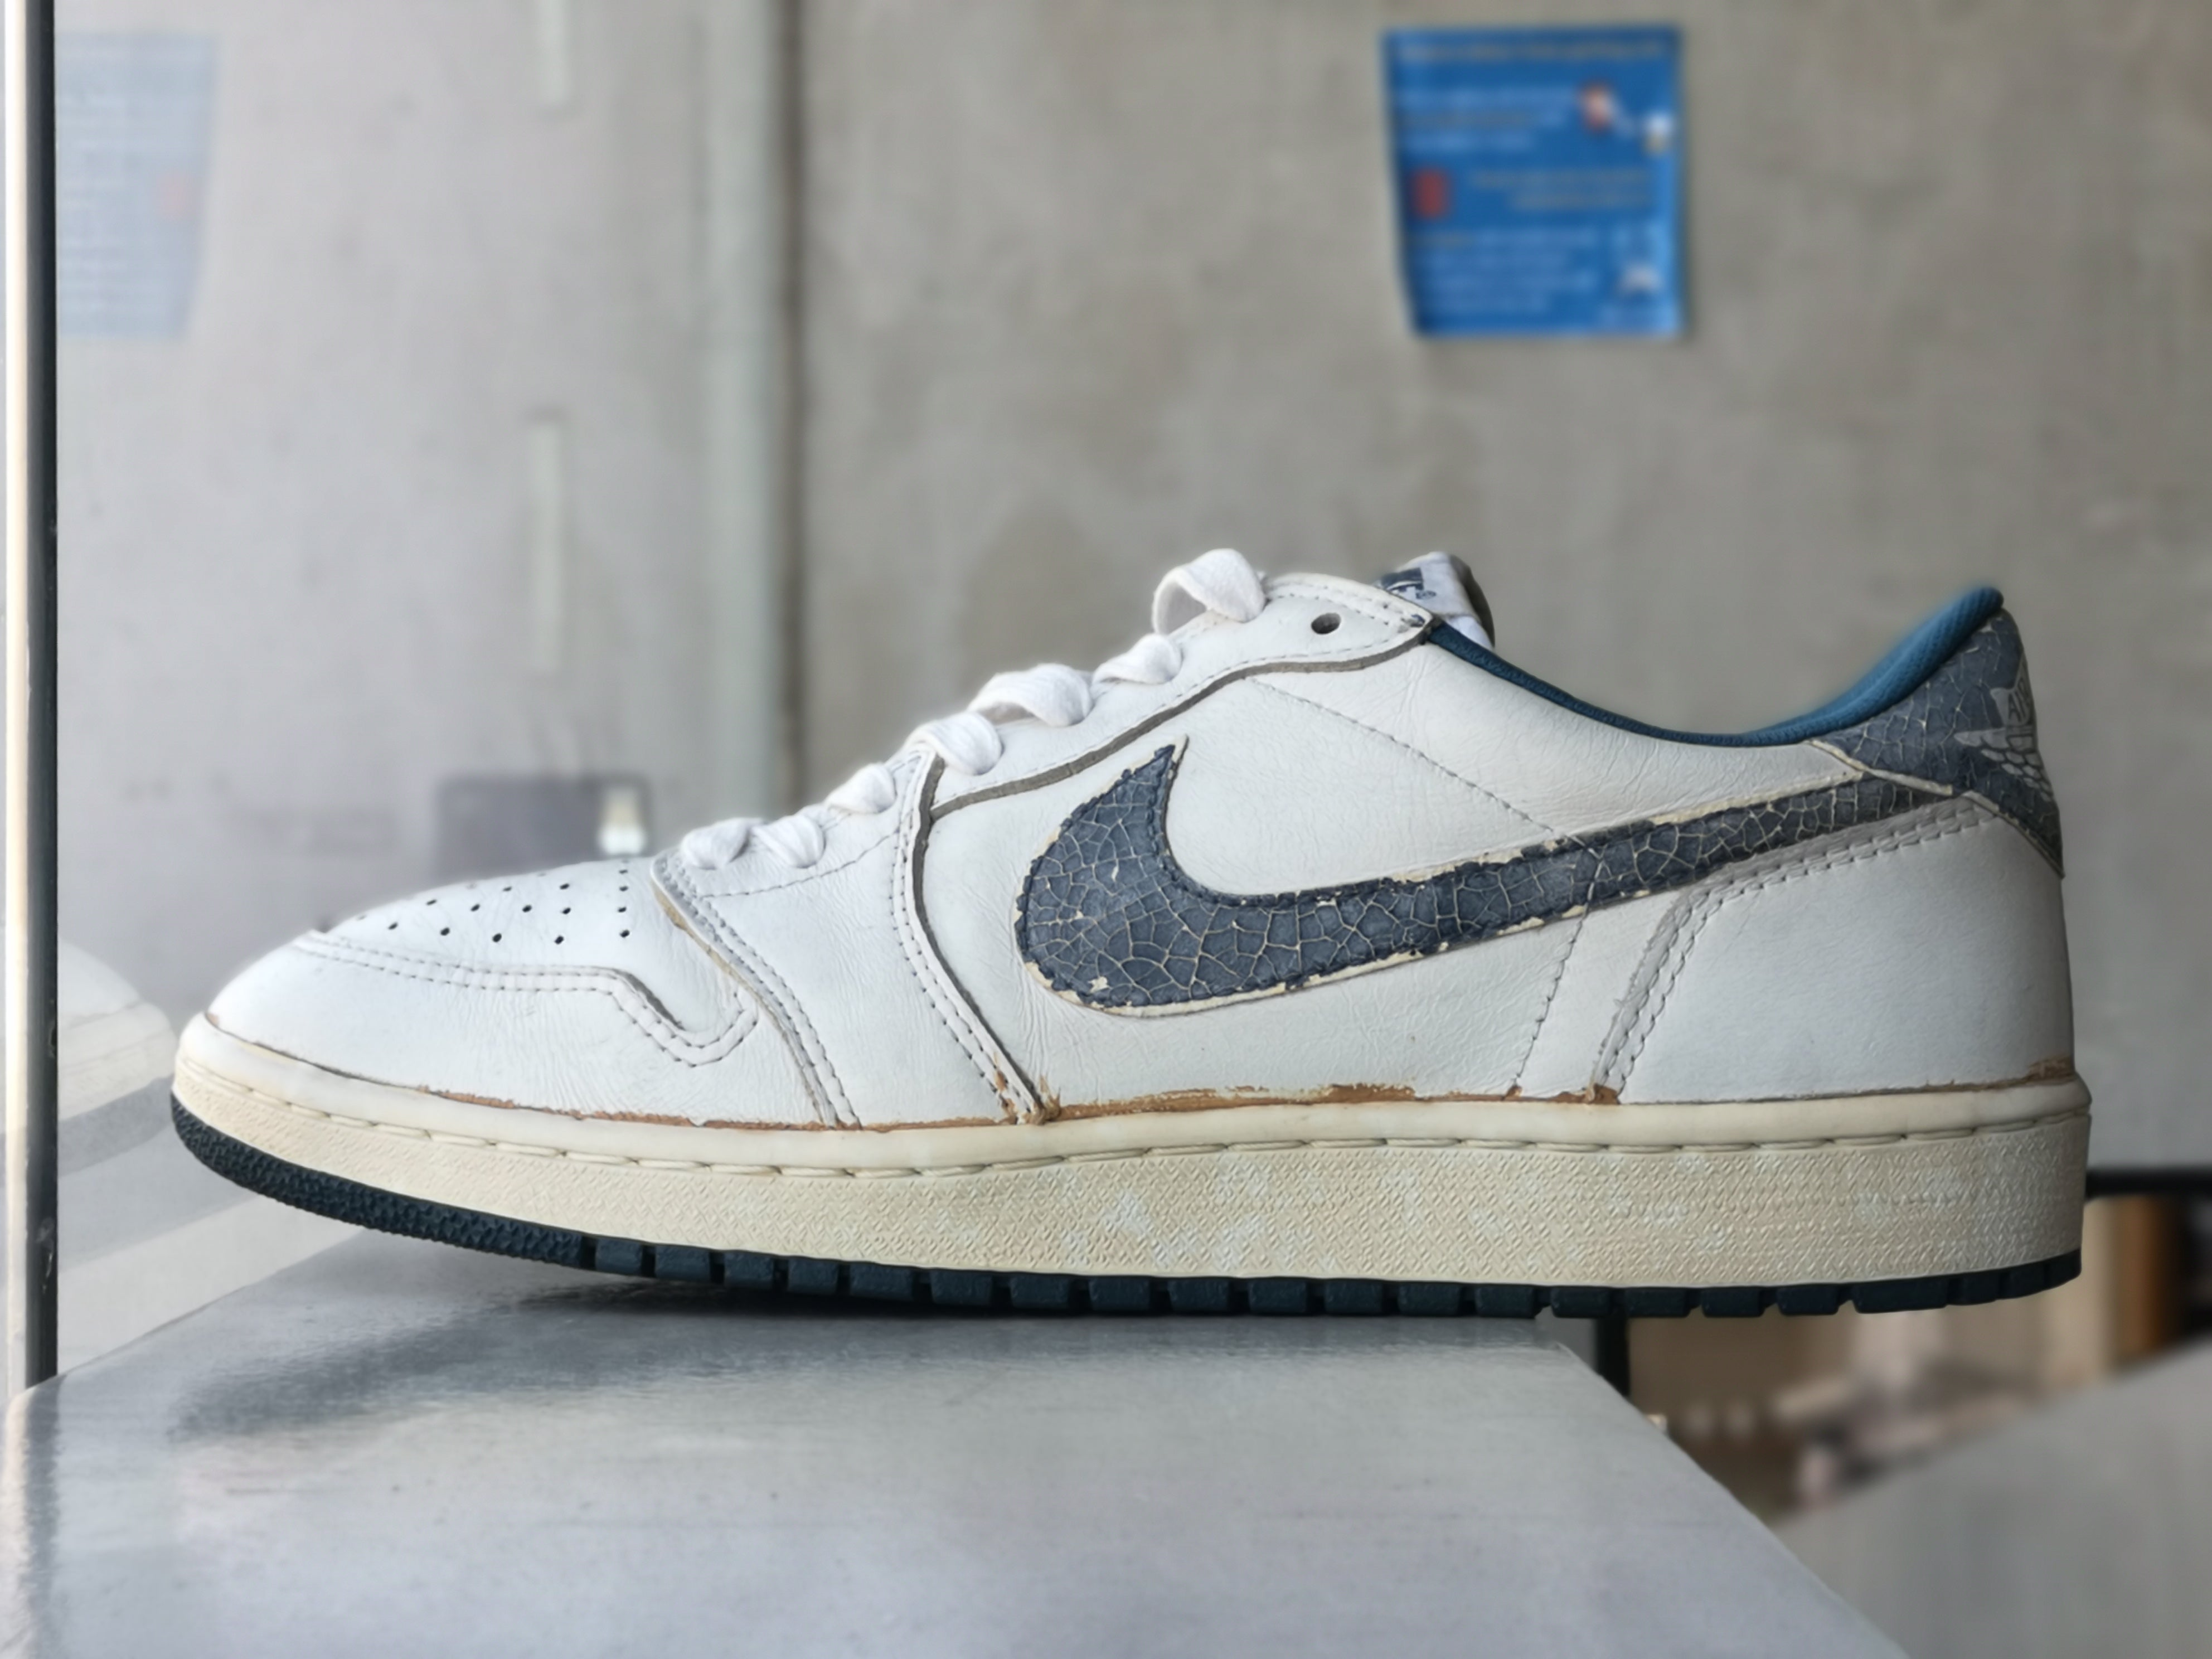 Air Jordan 1 Low Og Blue Metallic 1985